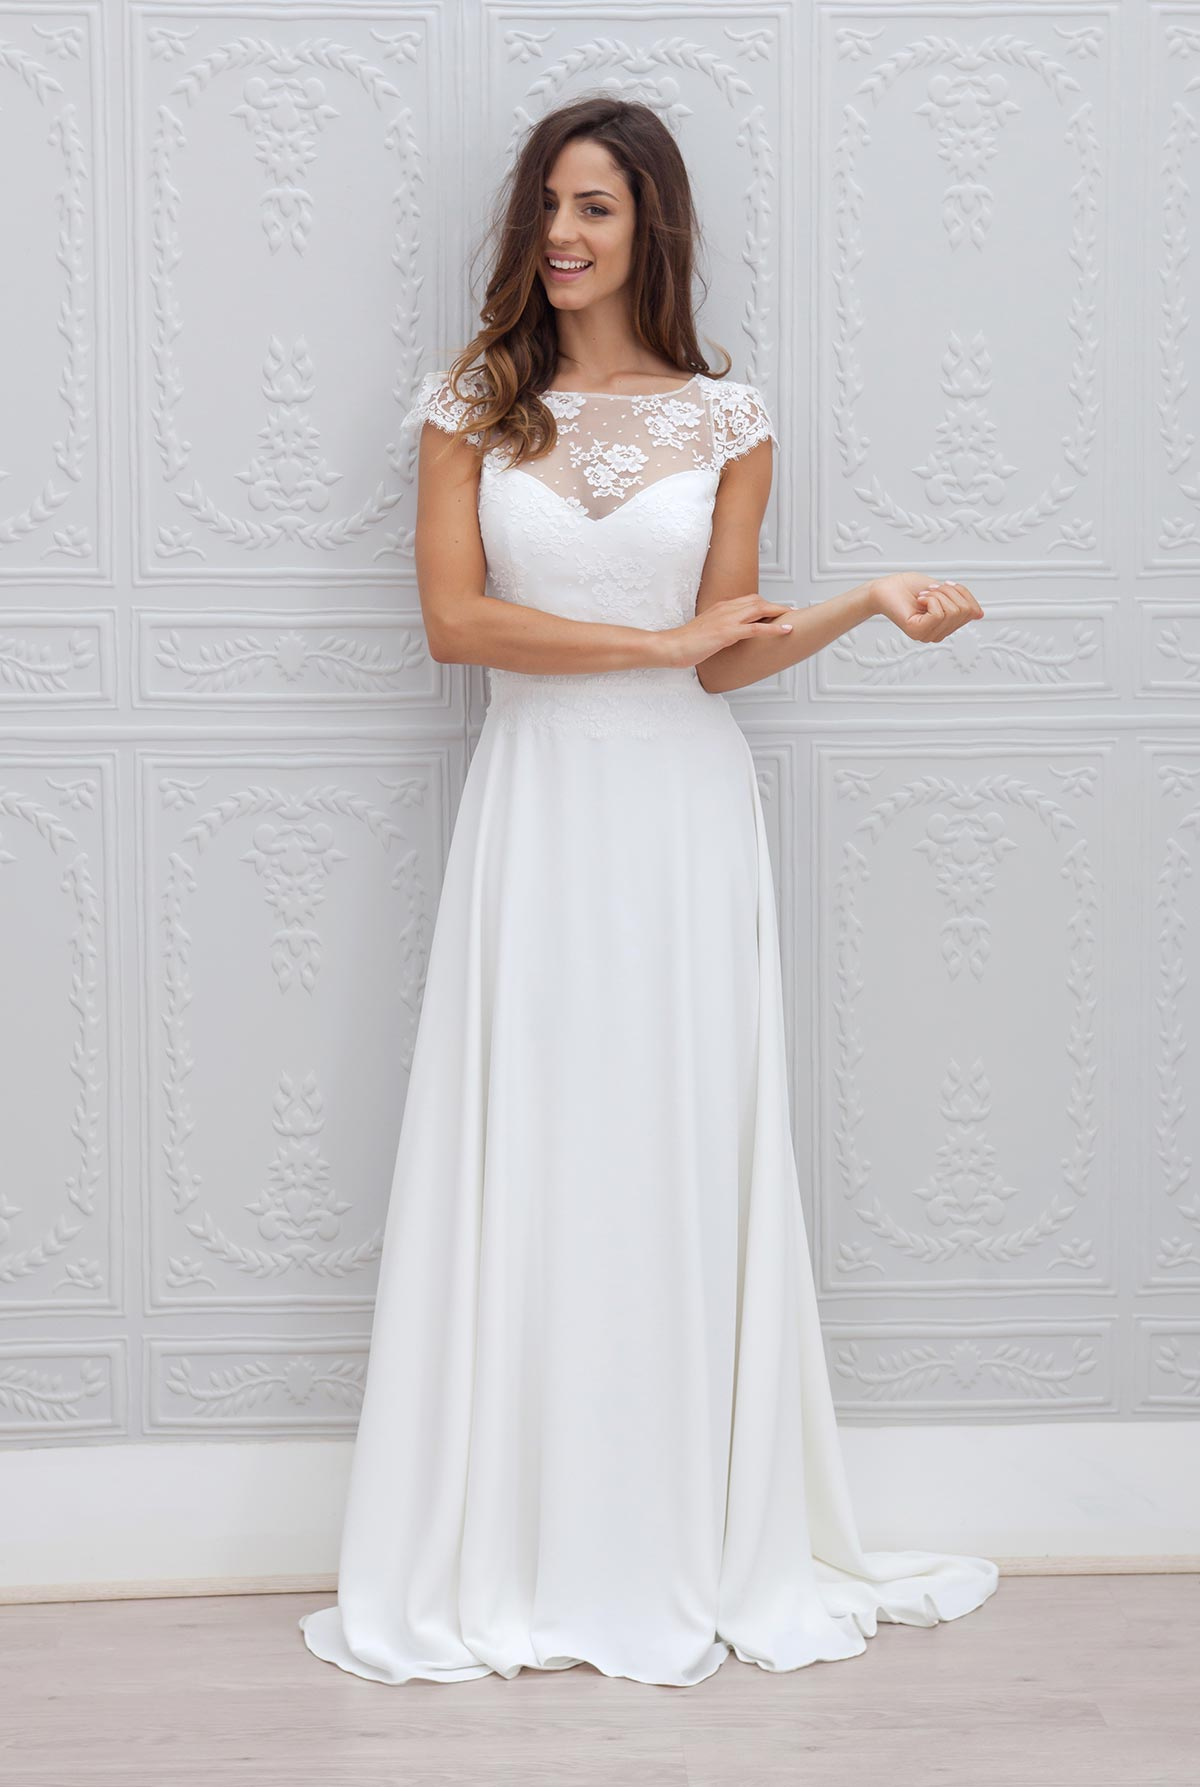 Robe de mari e c cilia par marie laporte collection 2015 for Robes de mariage petite macy